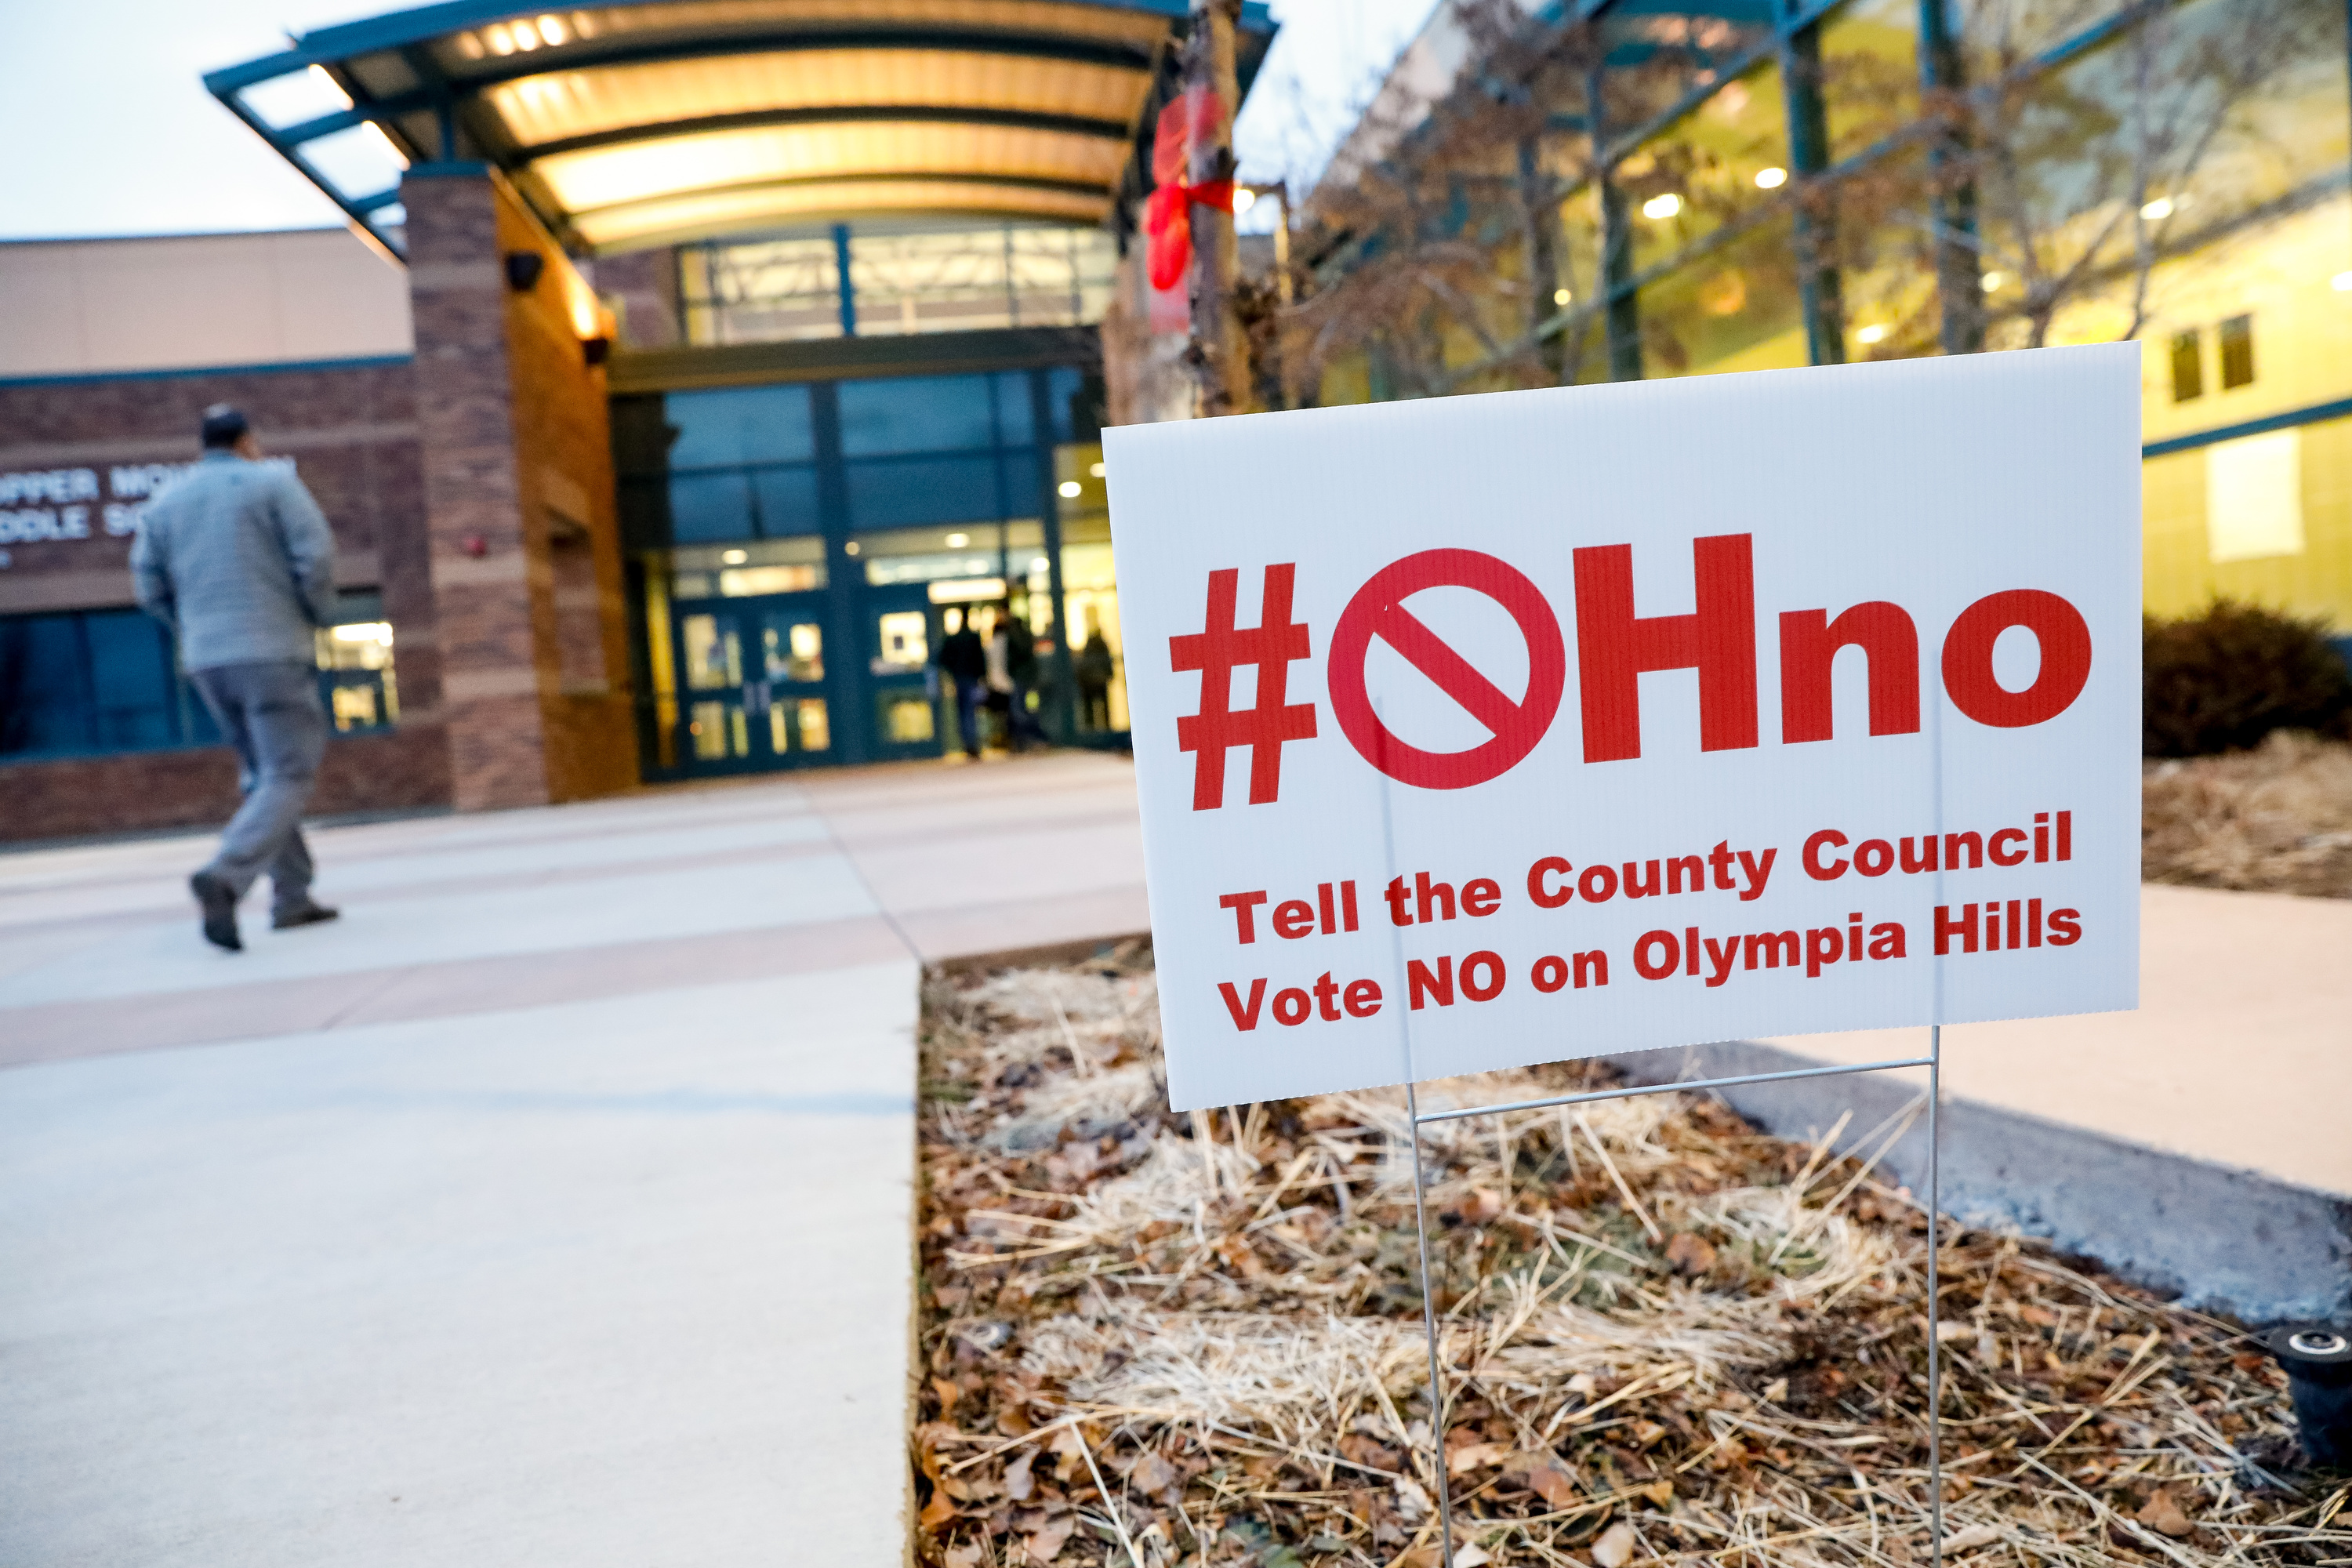 Yard signs oppose the Olympia Hills development before a public hearing with the Salt Lake County Council at Copper Mountain Middle School in Herriman on Tuesday, Jan. 28, 2020.